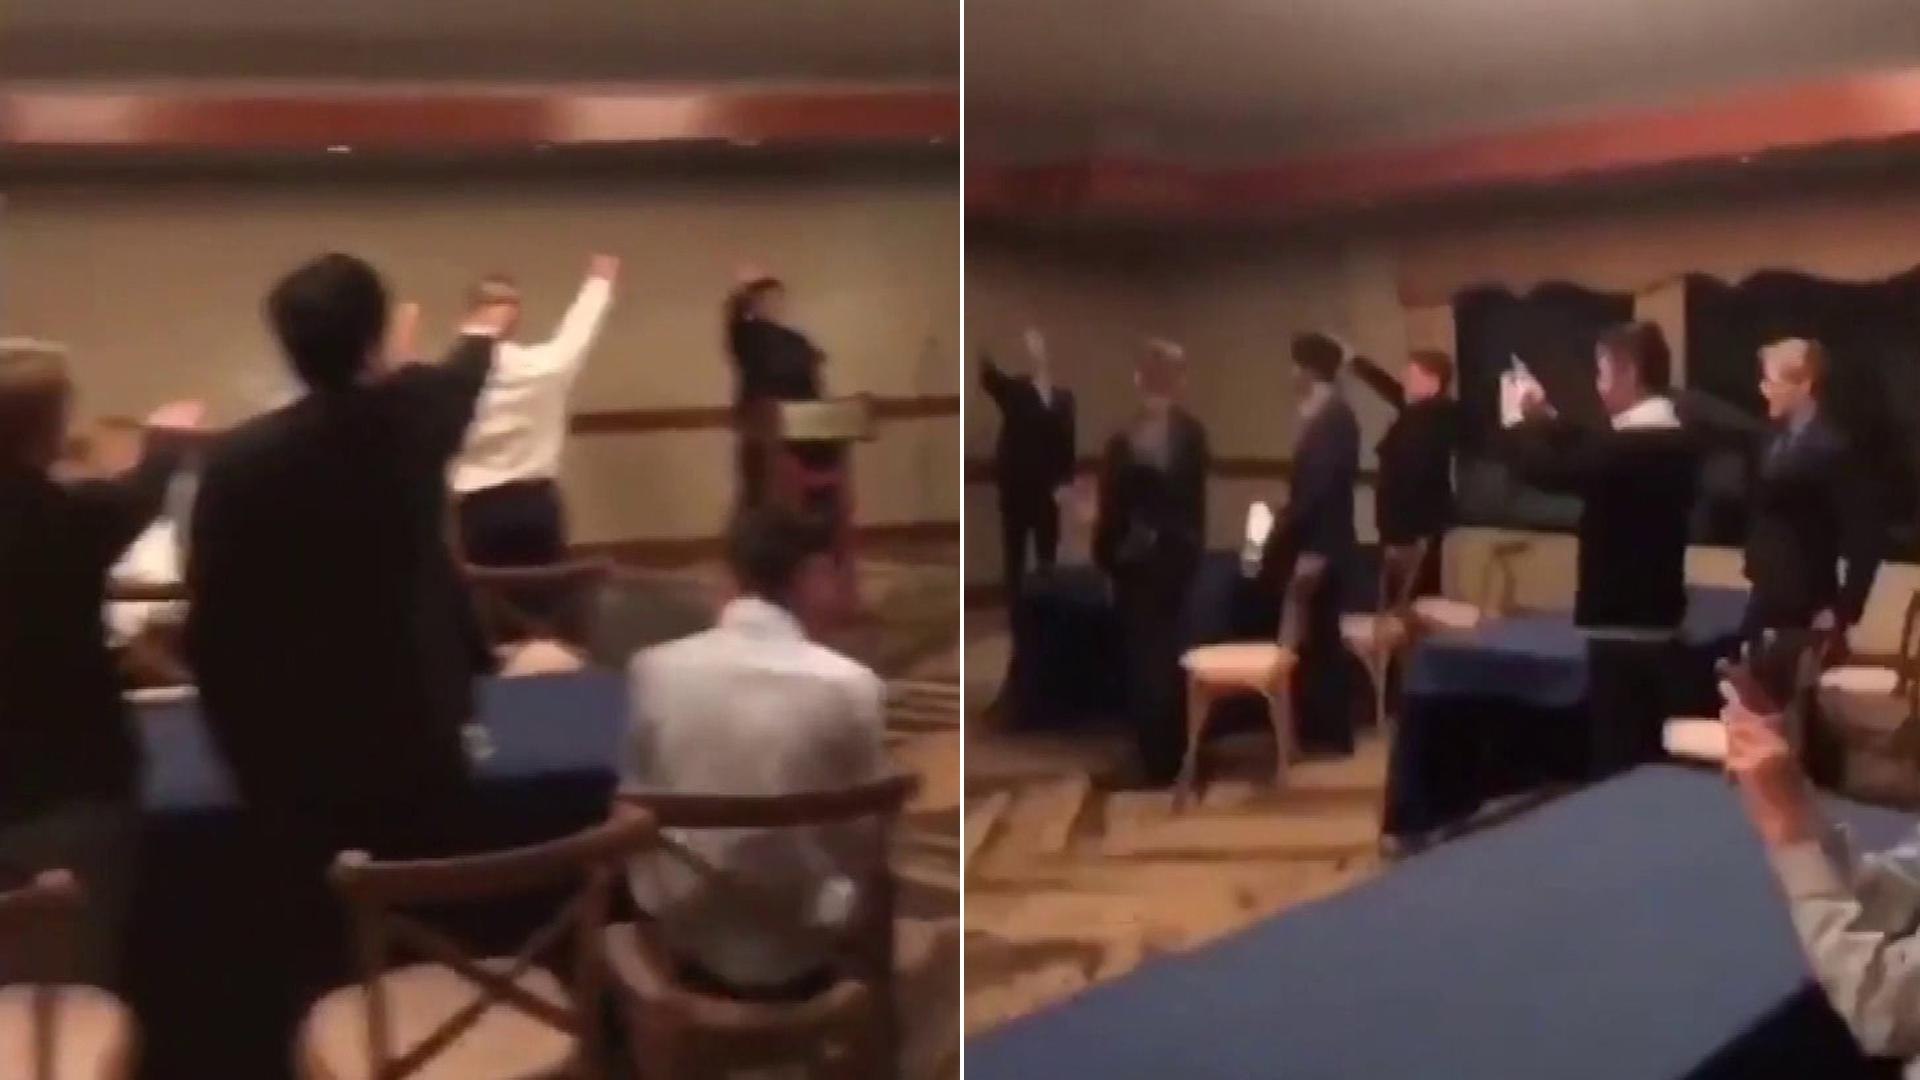 A video emerged on Instagram showing a group of teens giving a Nazi salute at an event last November.